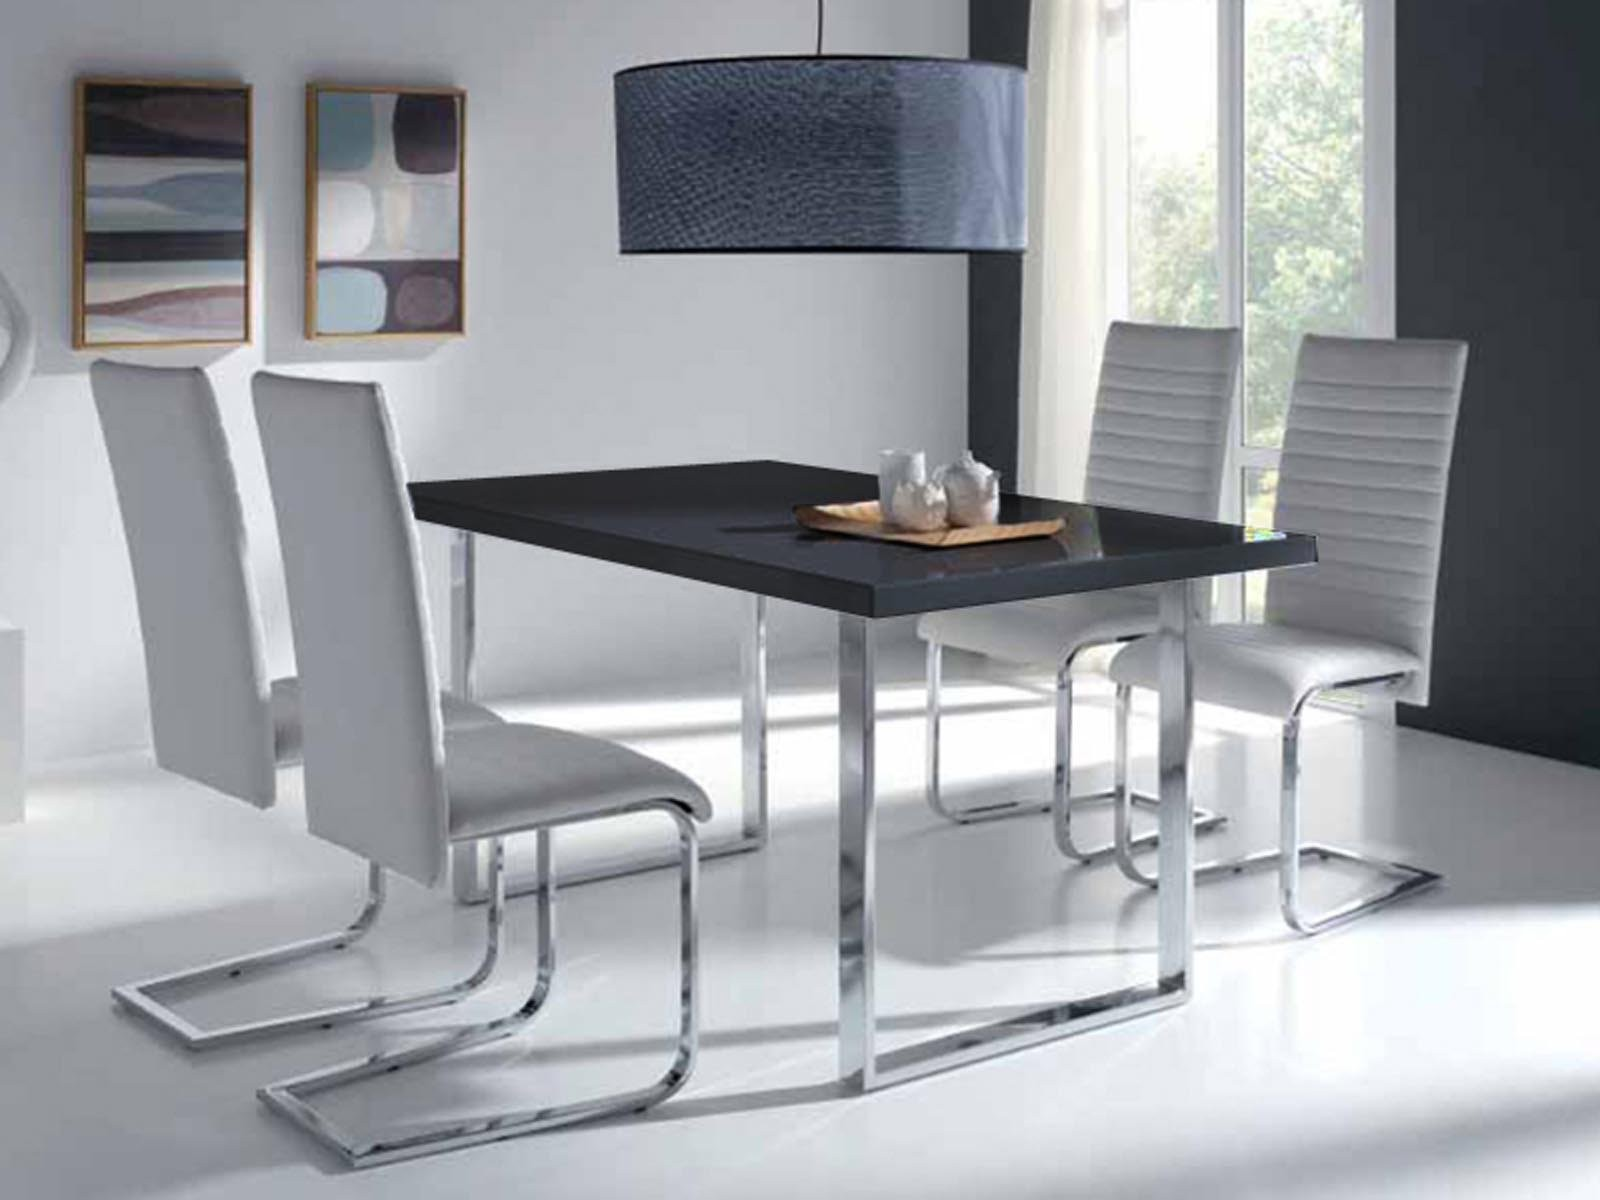 table de cuisine et 4 chaises pas cher chaise id es de. Black Bedroom Furniture Sets. Home Design Ideas